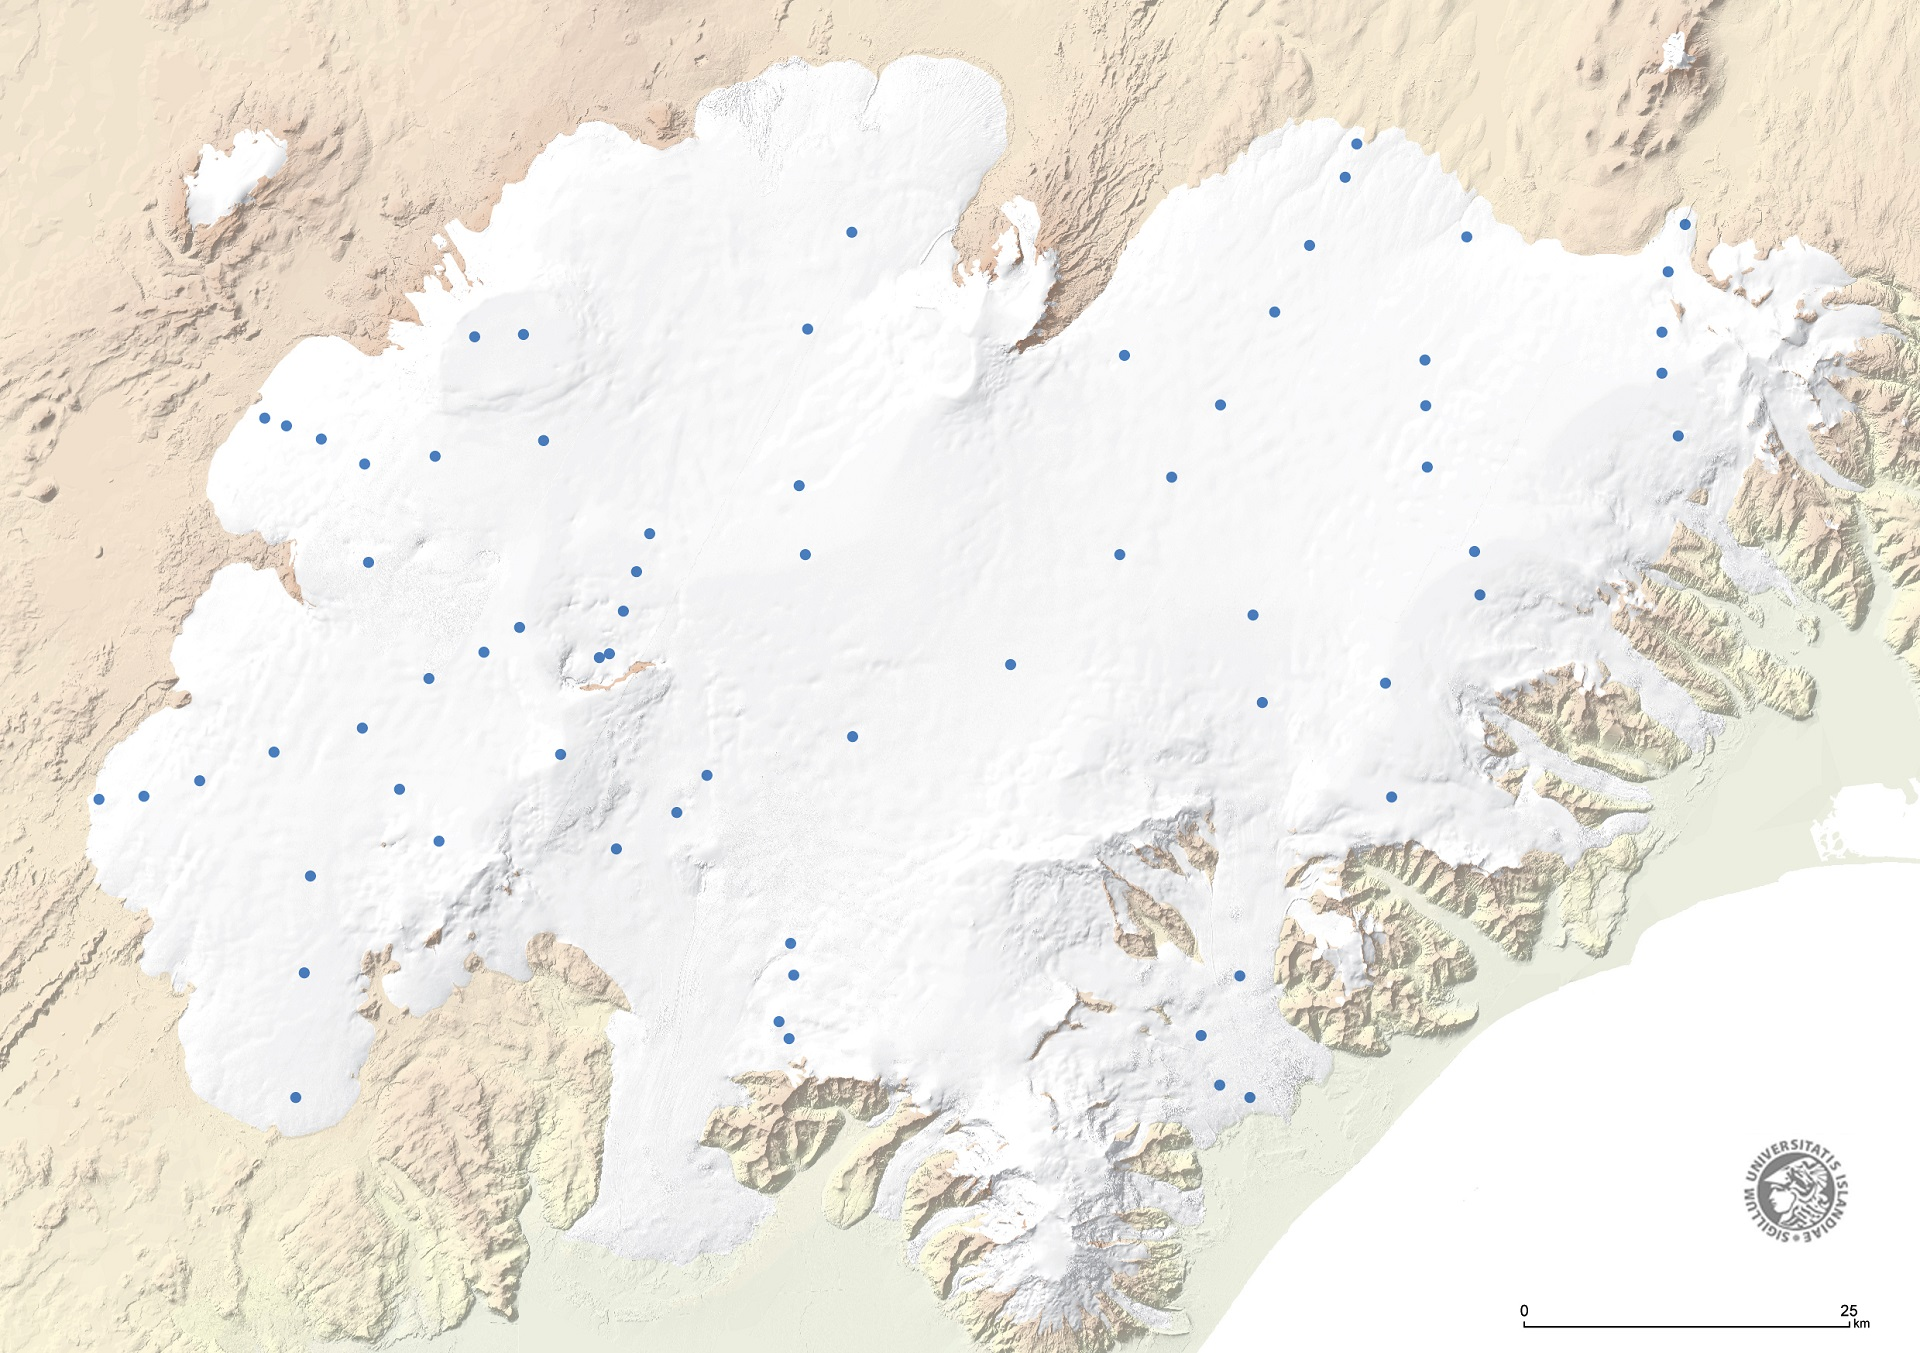 Mass balance measurement sites on Vatnajökull. Source: Glaciology Group, Institute of Earth Sciences, University of Iceland.